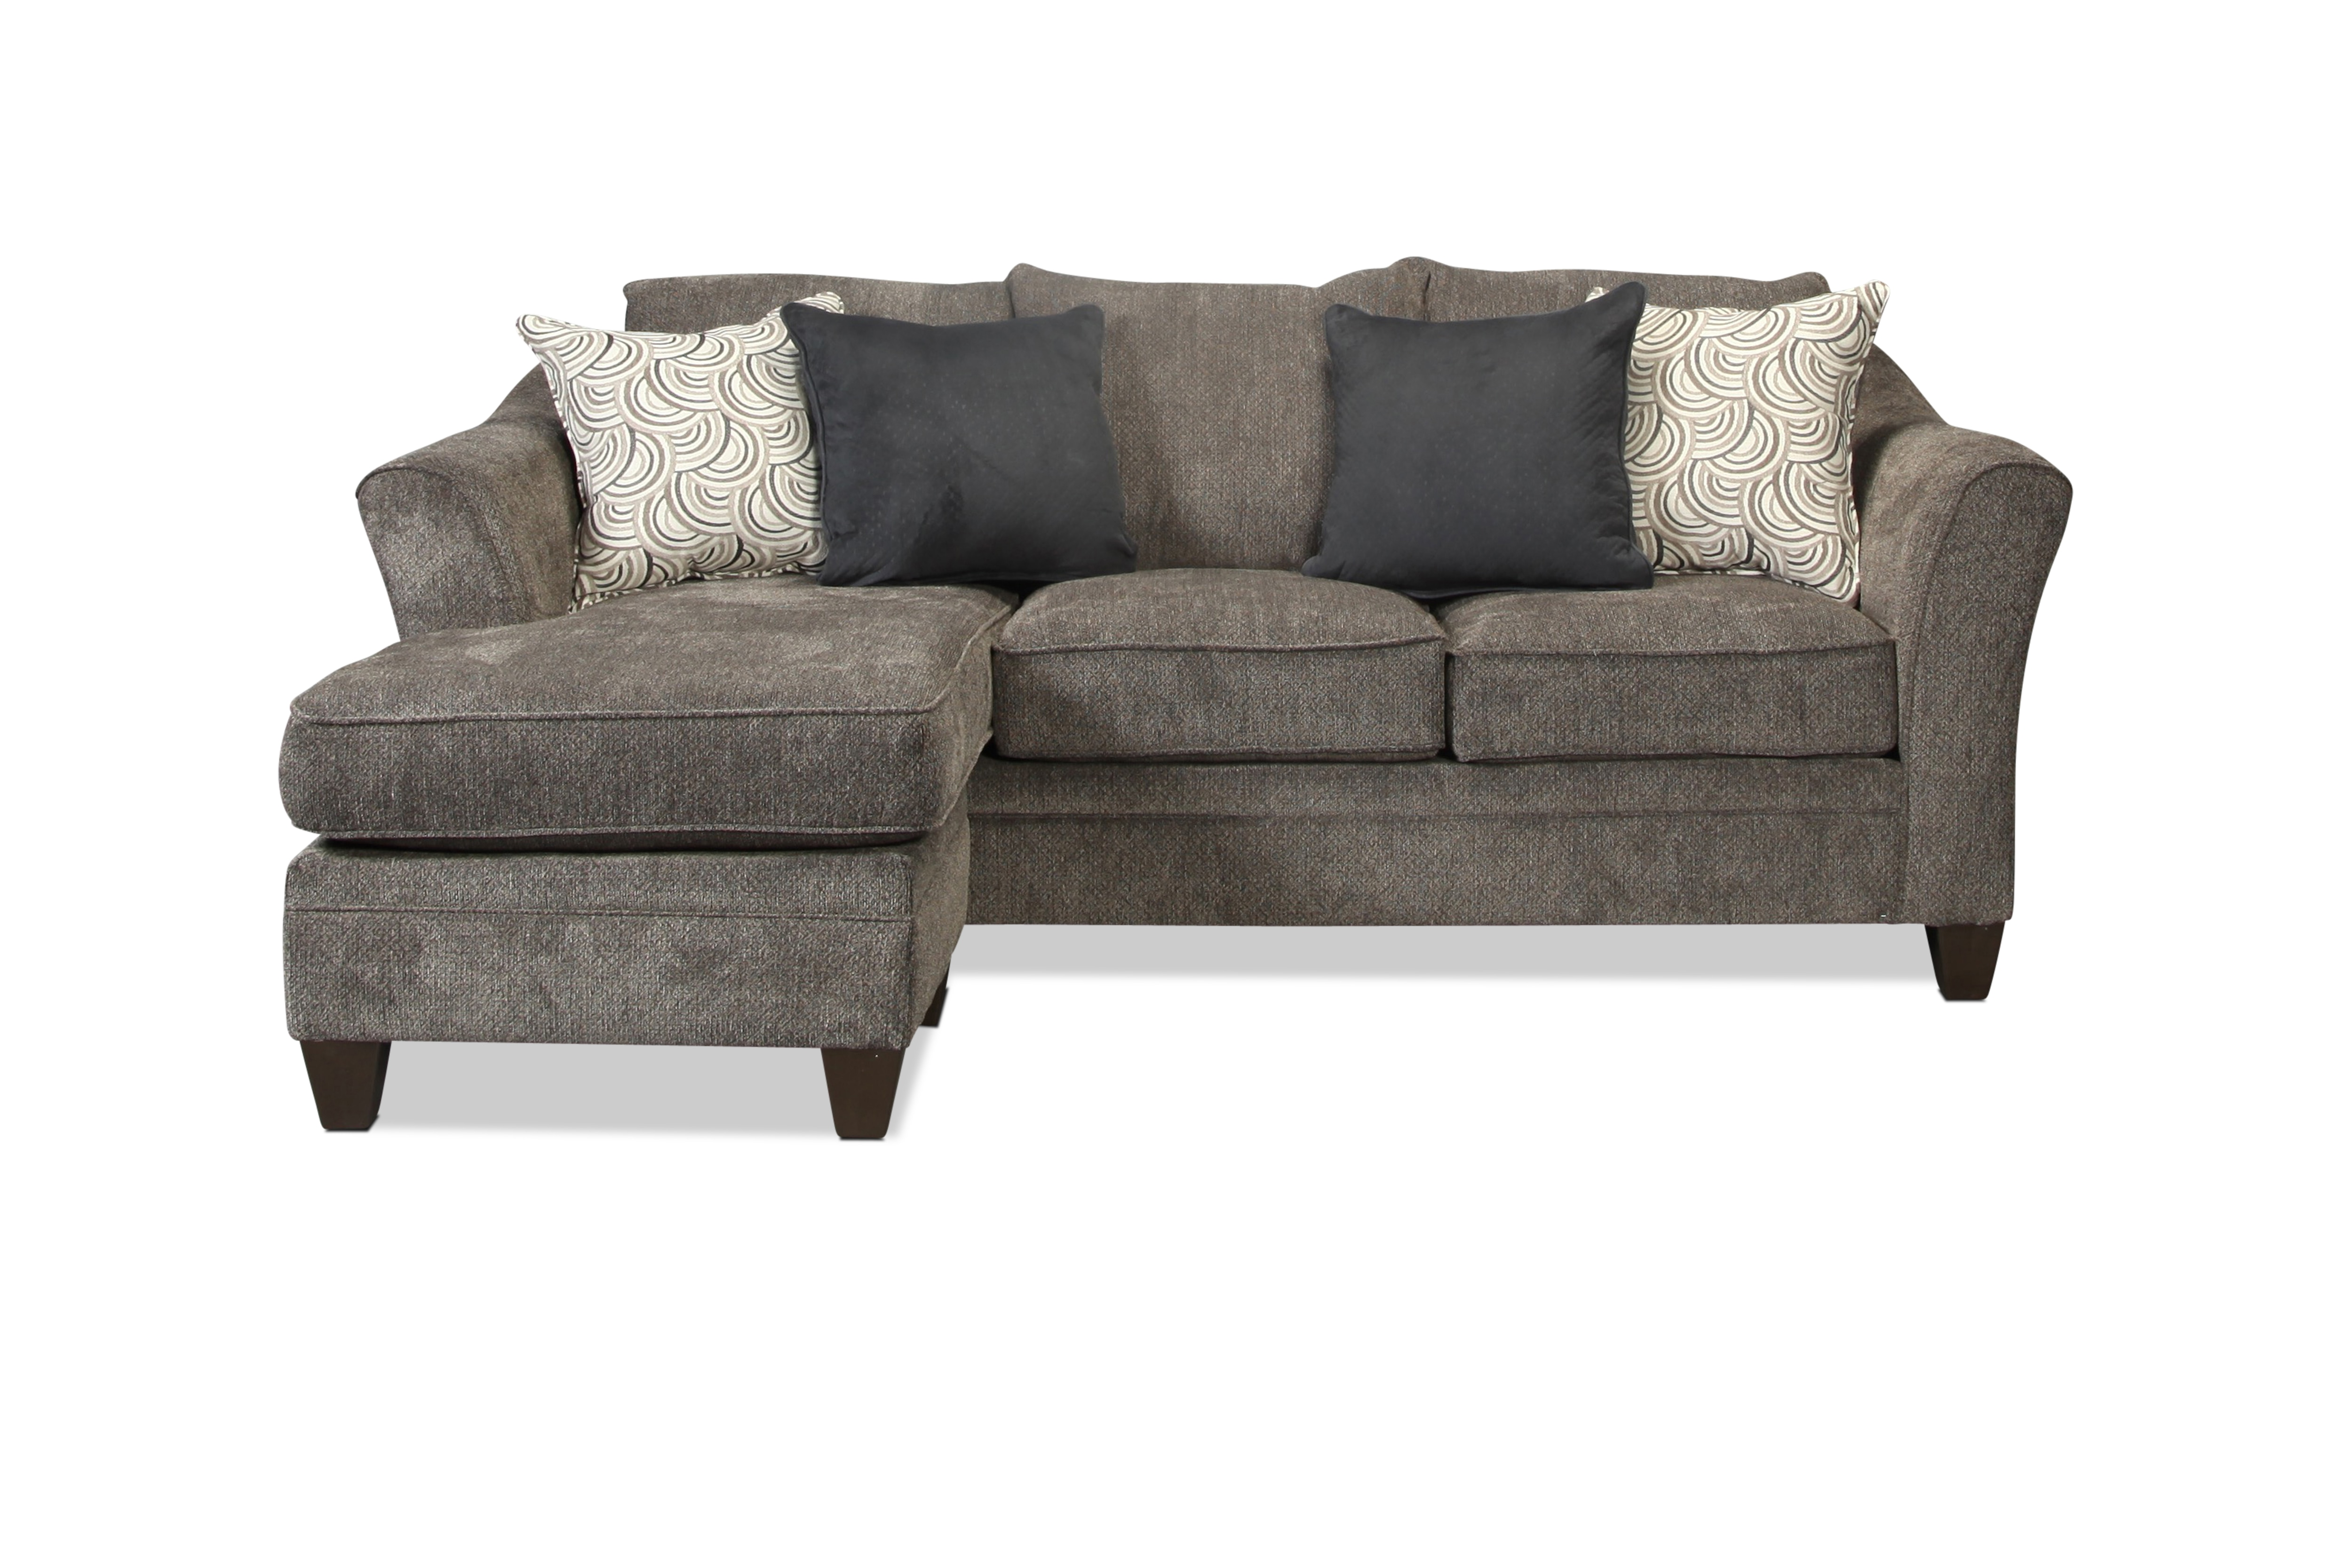 Desmond Sofa Chaise- Pewter